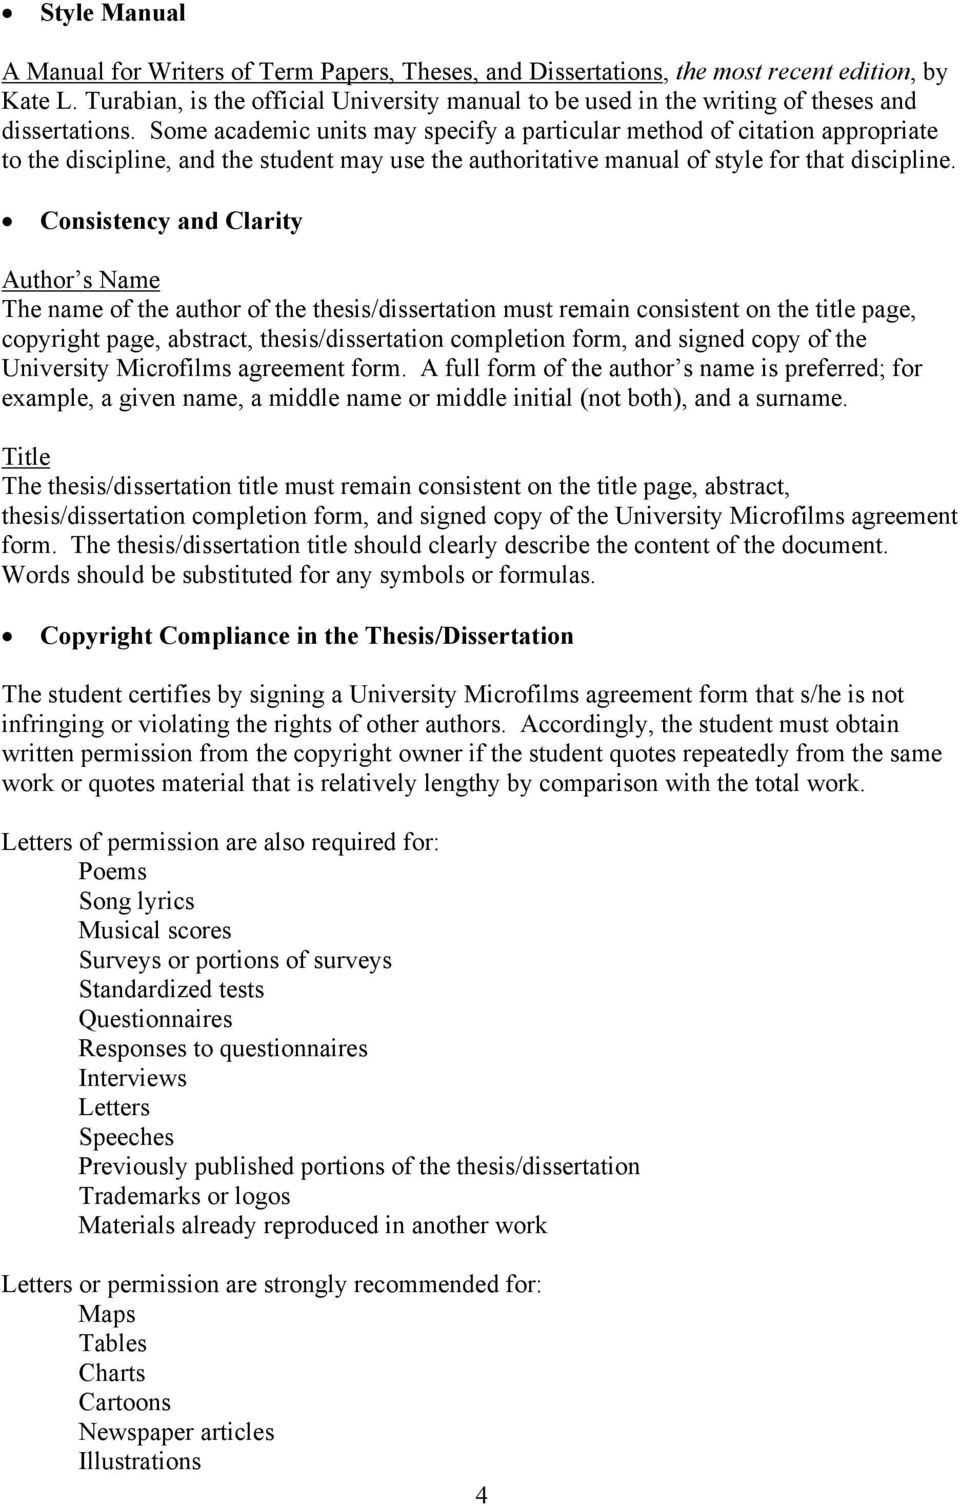 collection of american thesis and dissertations The student adheres to the university requirements for the preparation of theses and dissertations as described in this guide and prepares a thesis/dissertation acceptable to university microfilms incorporated (umi), which is the publisher of american university theses and dissertations.